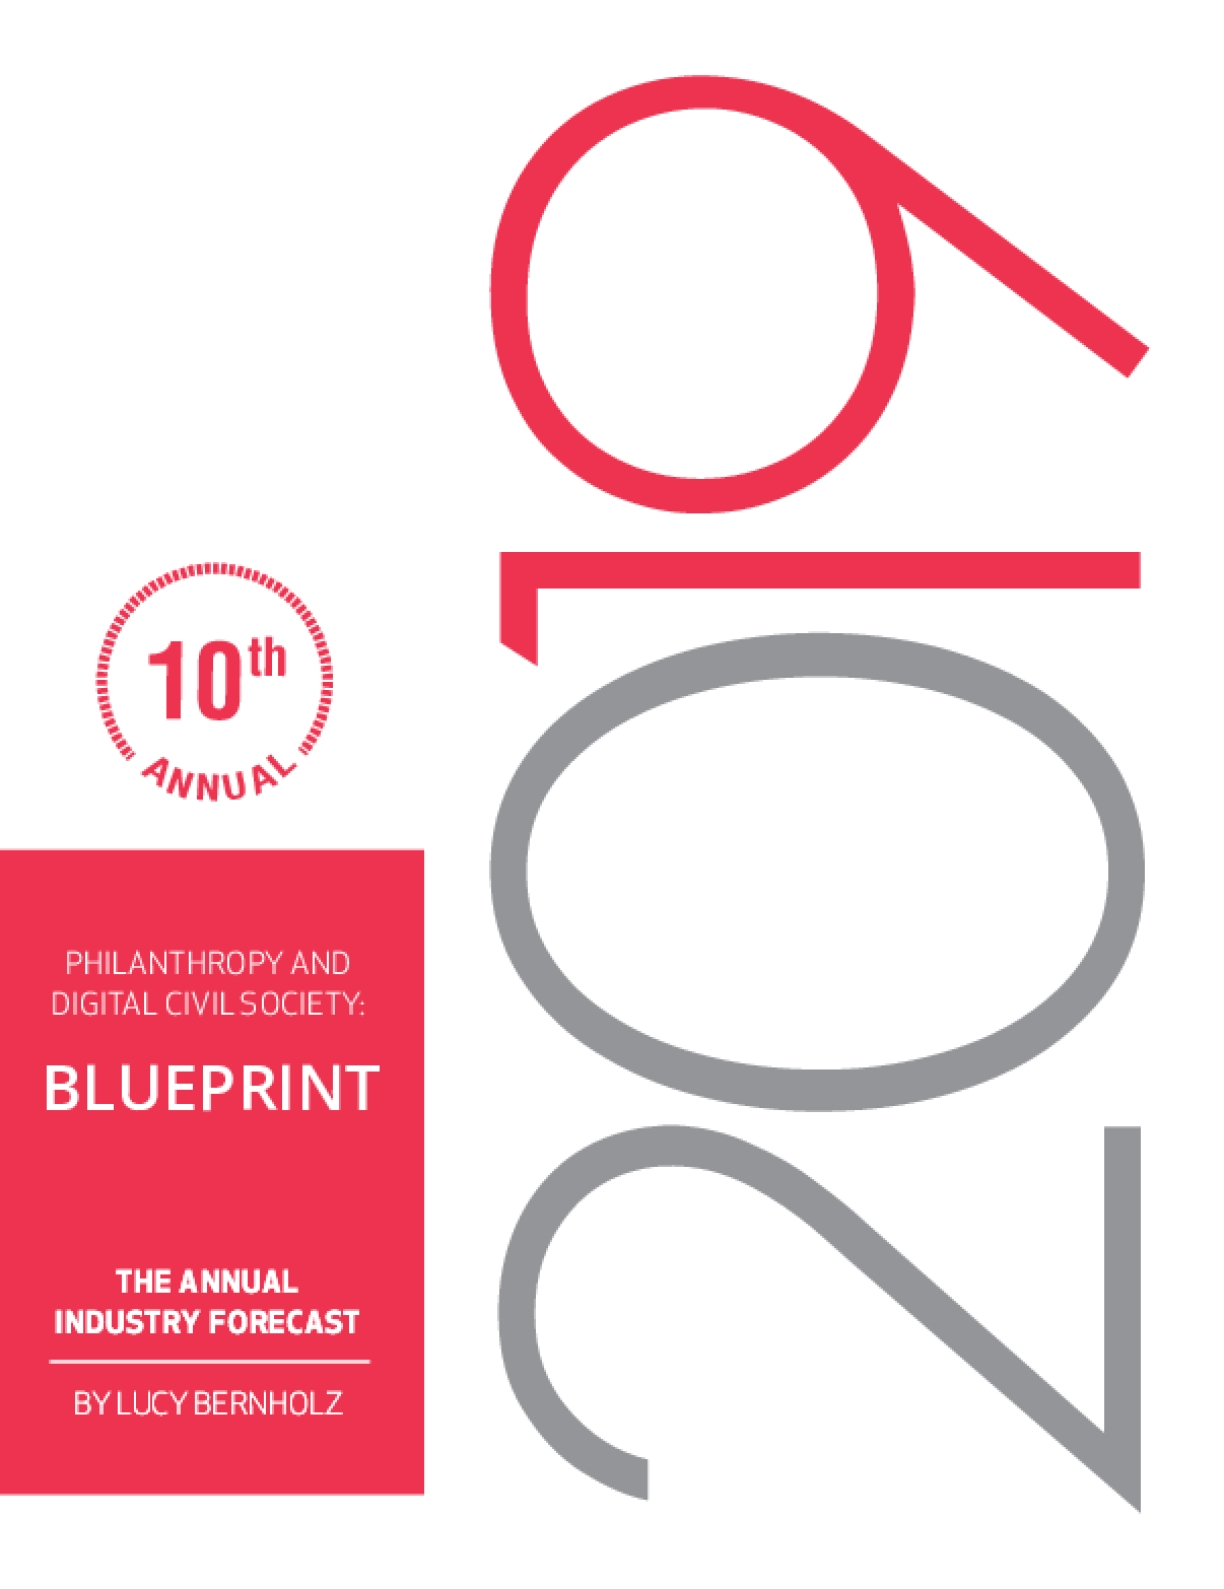 Philanthropy and Digital Civil Society: Blueprint 2019